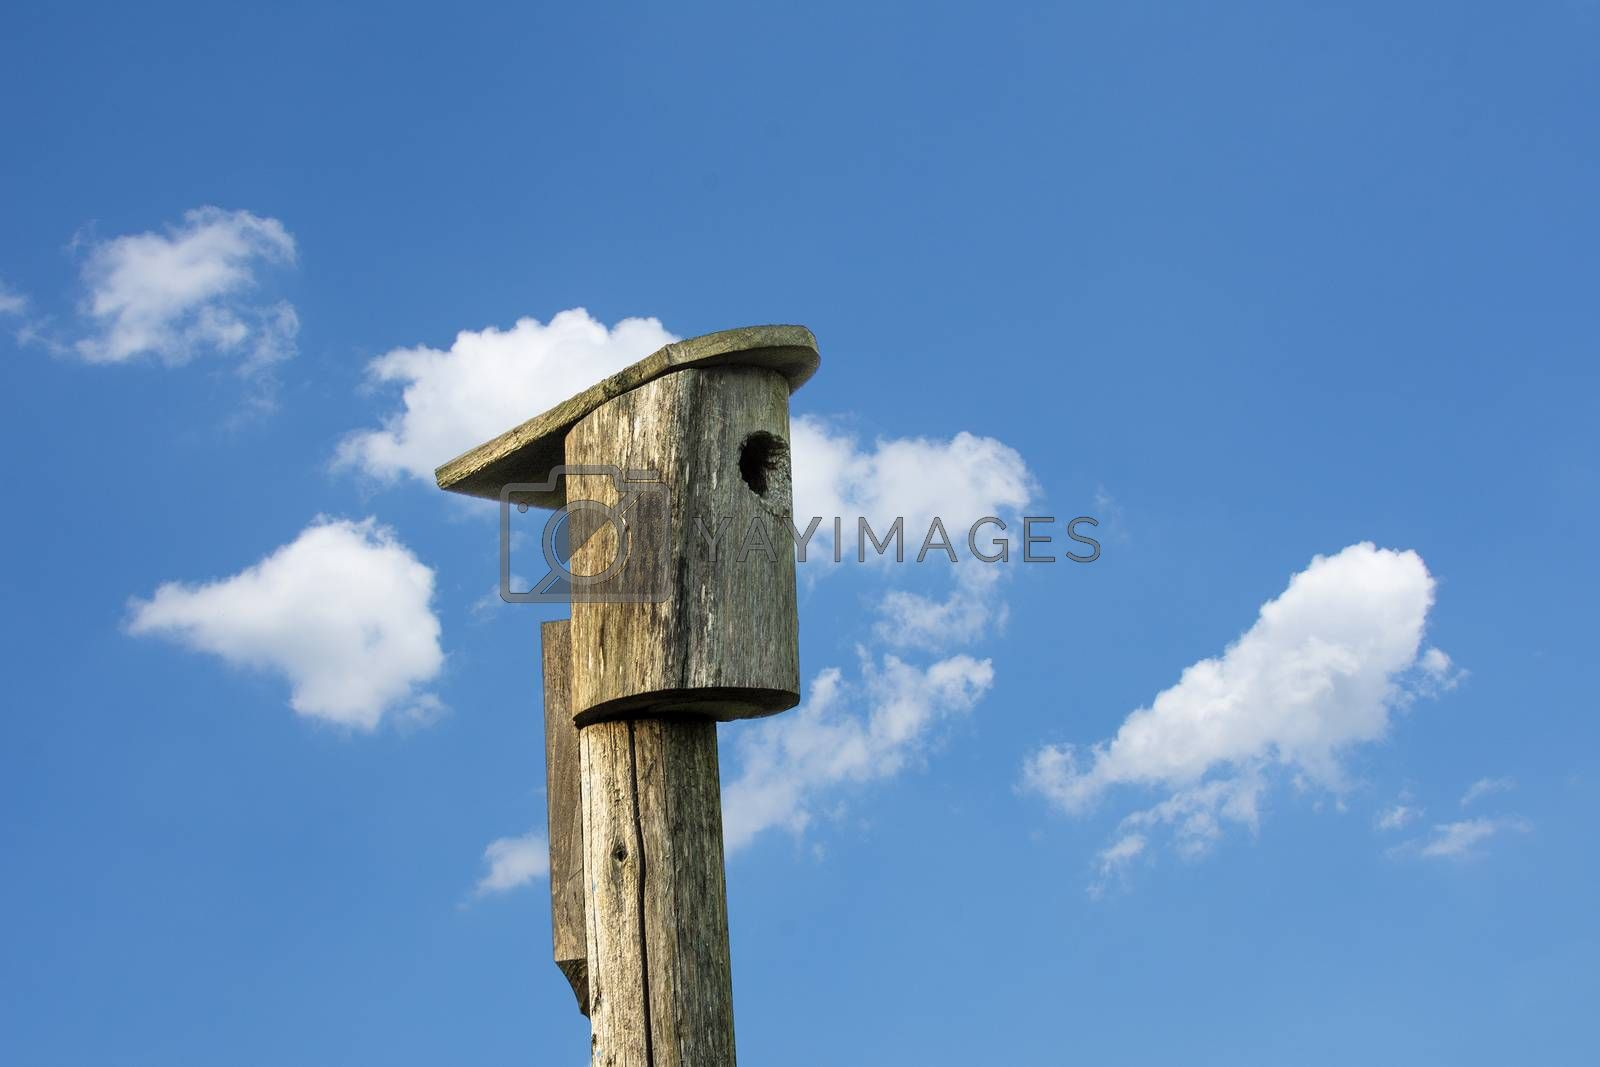 A wooden birdhouse carved from a whole piece of wood and mounted on a wooden pillar